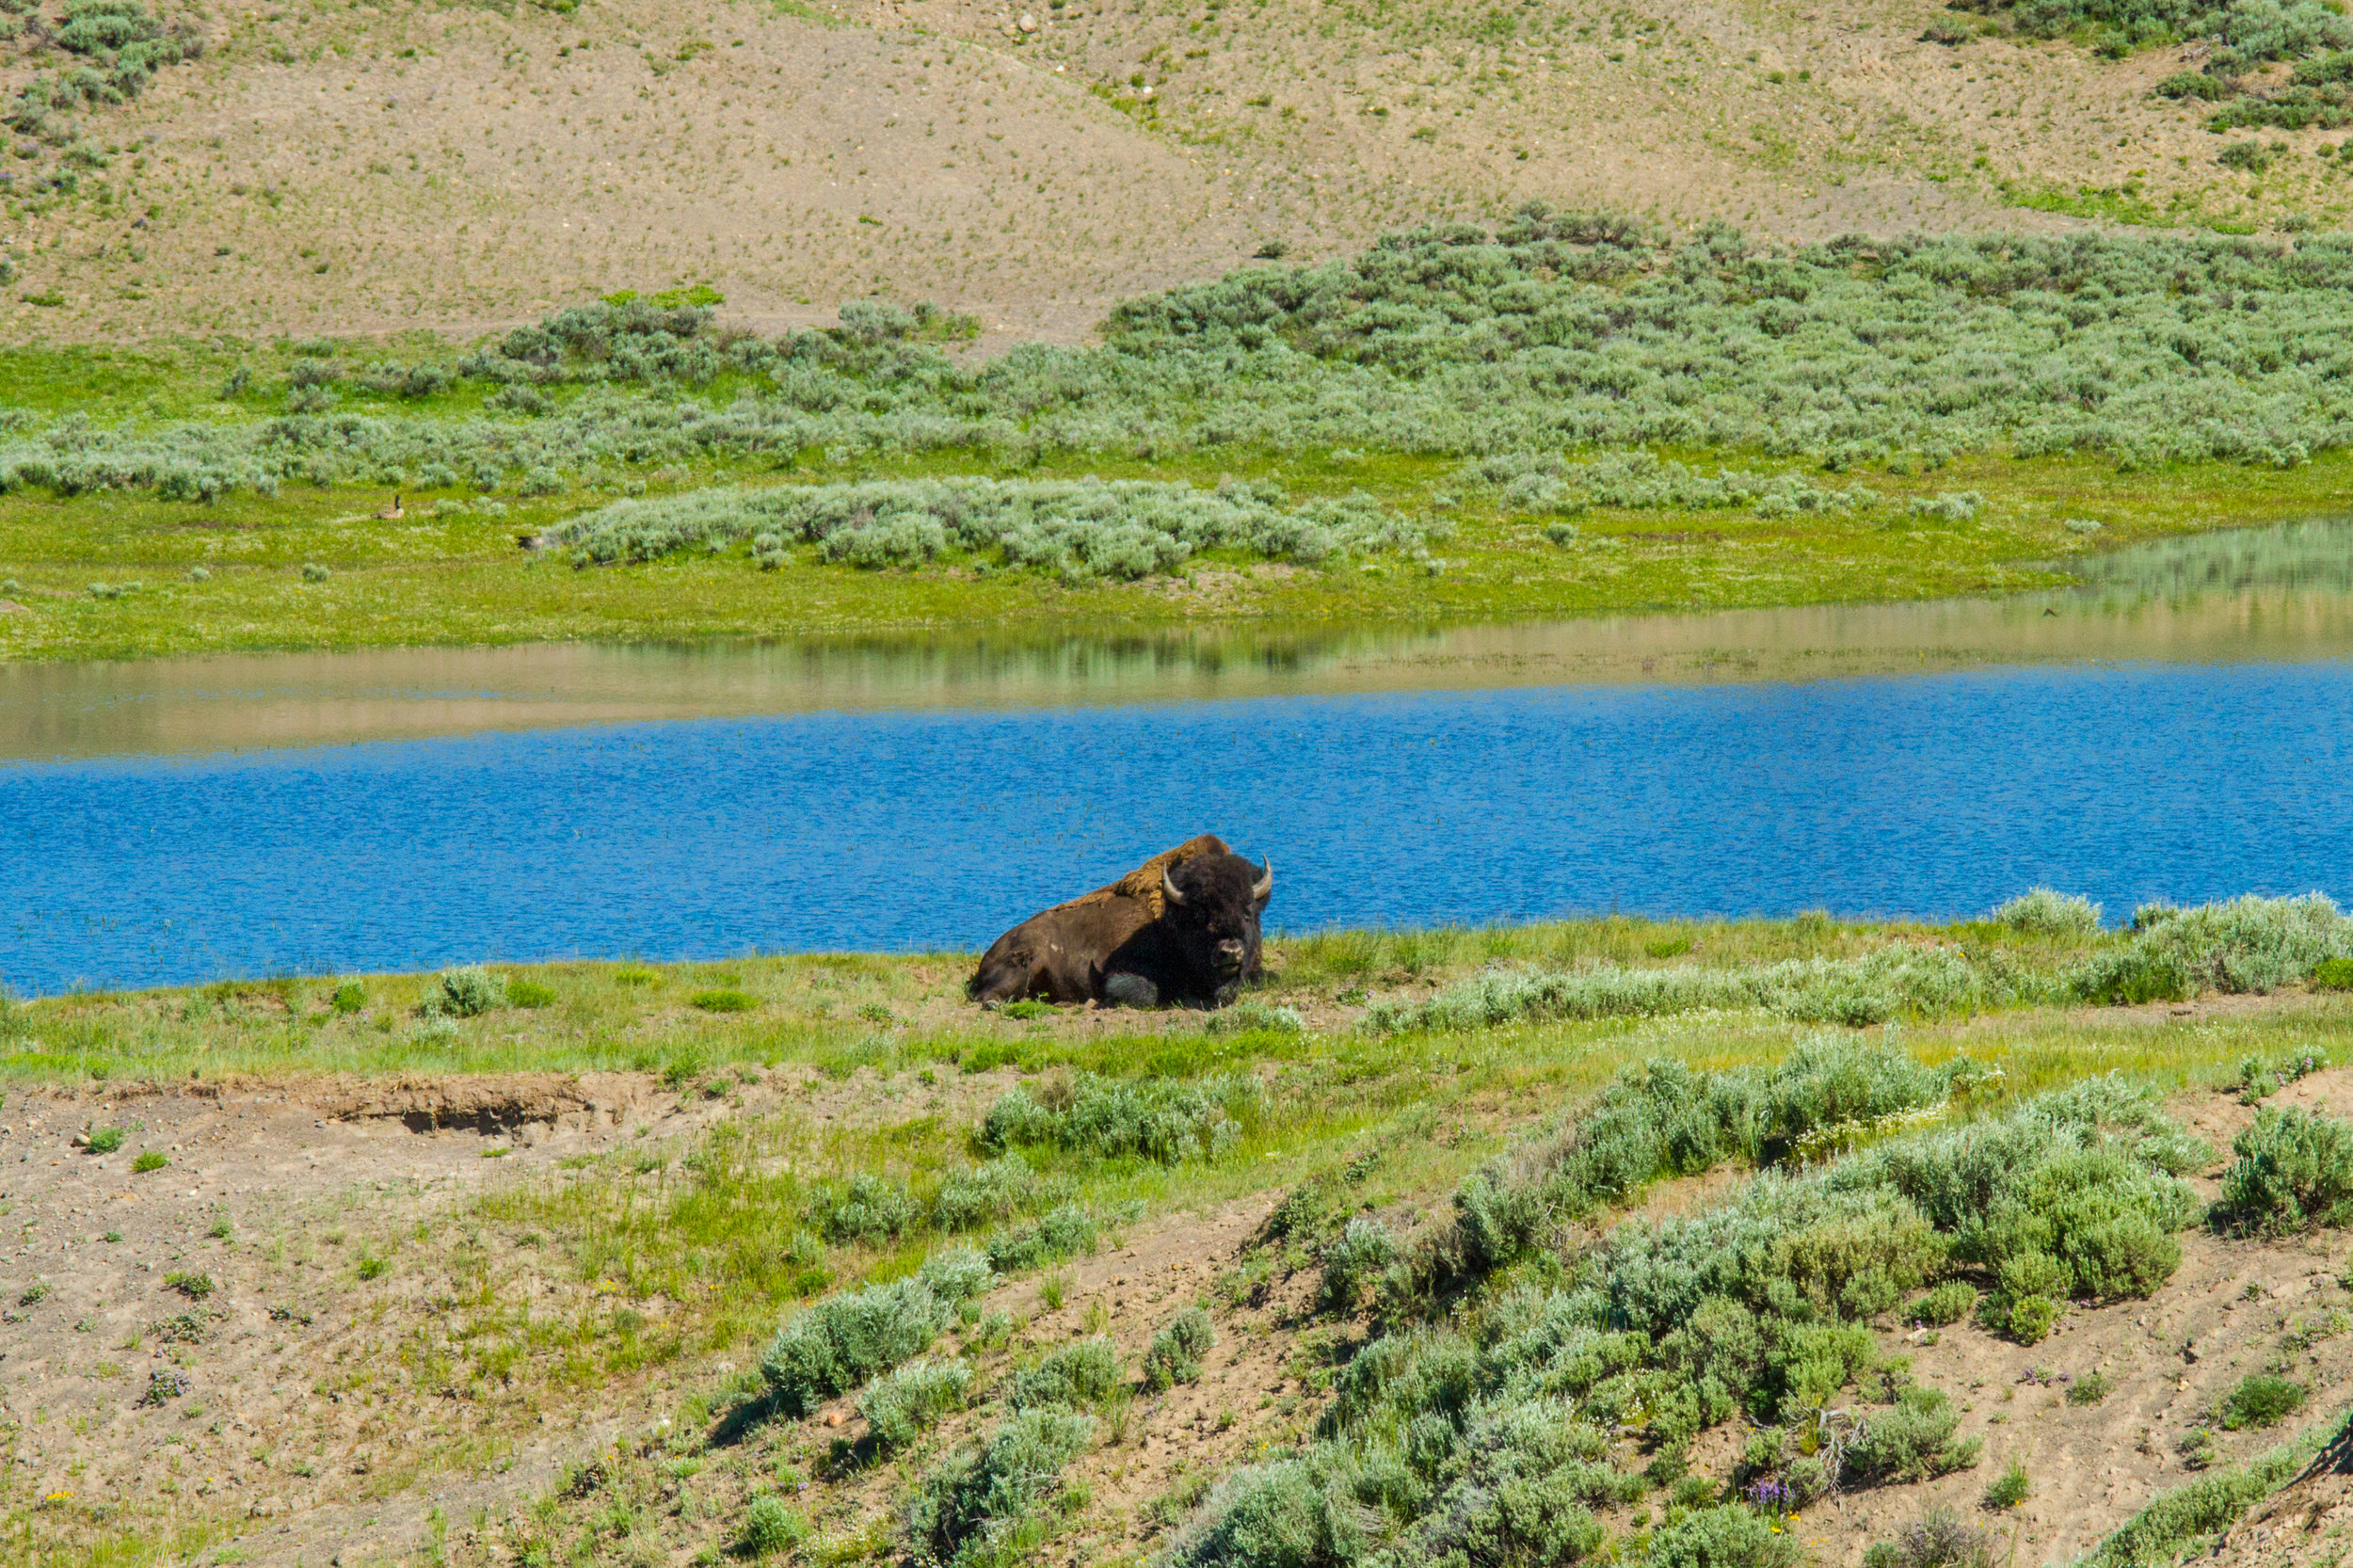 Hayden Valley, Yellowstone National Park, Image # 5209